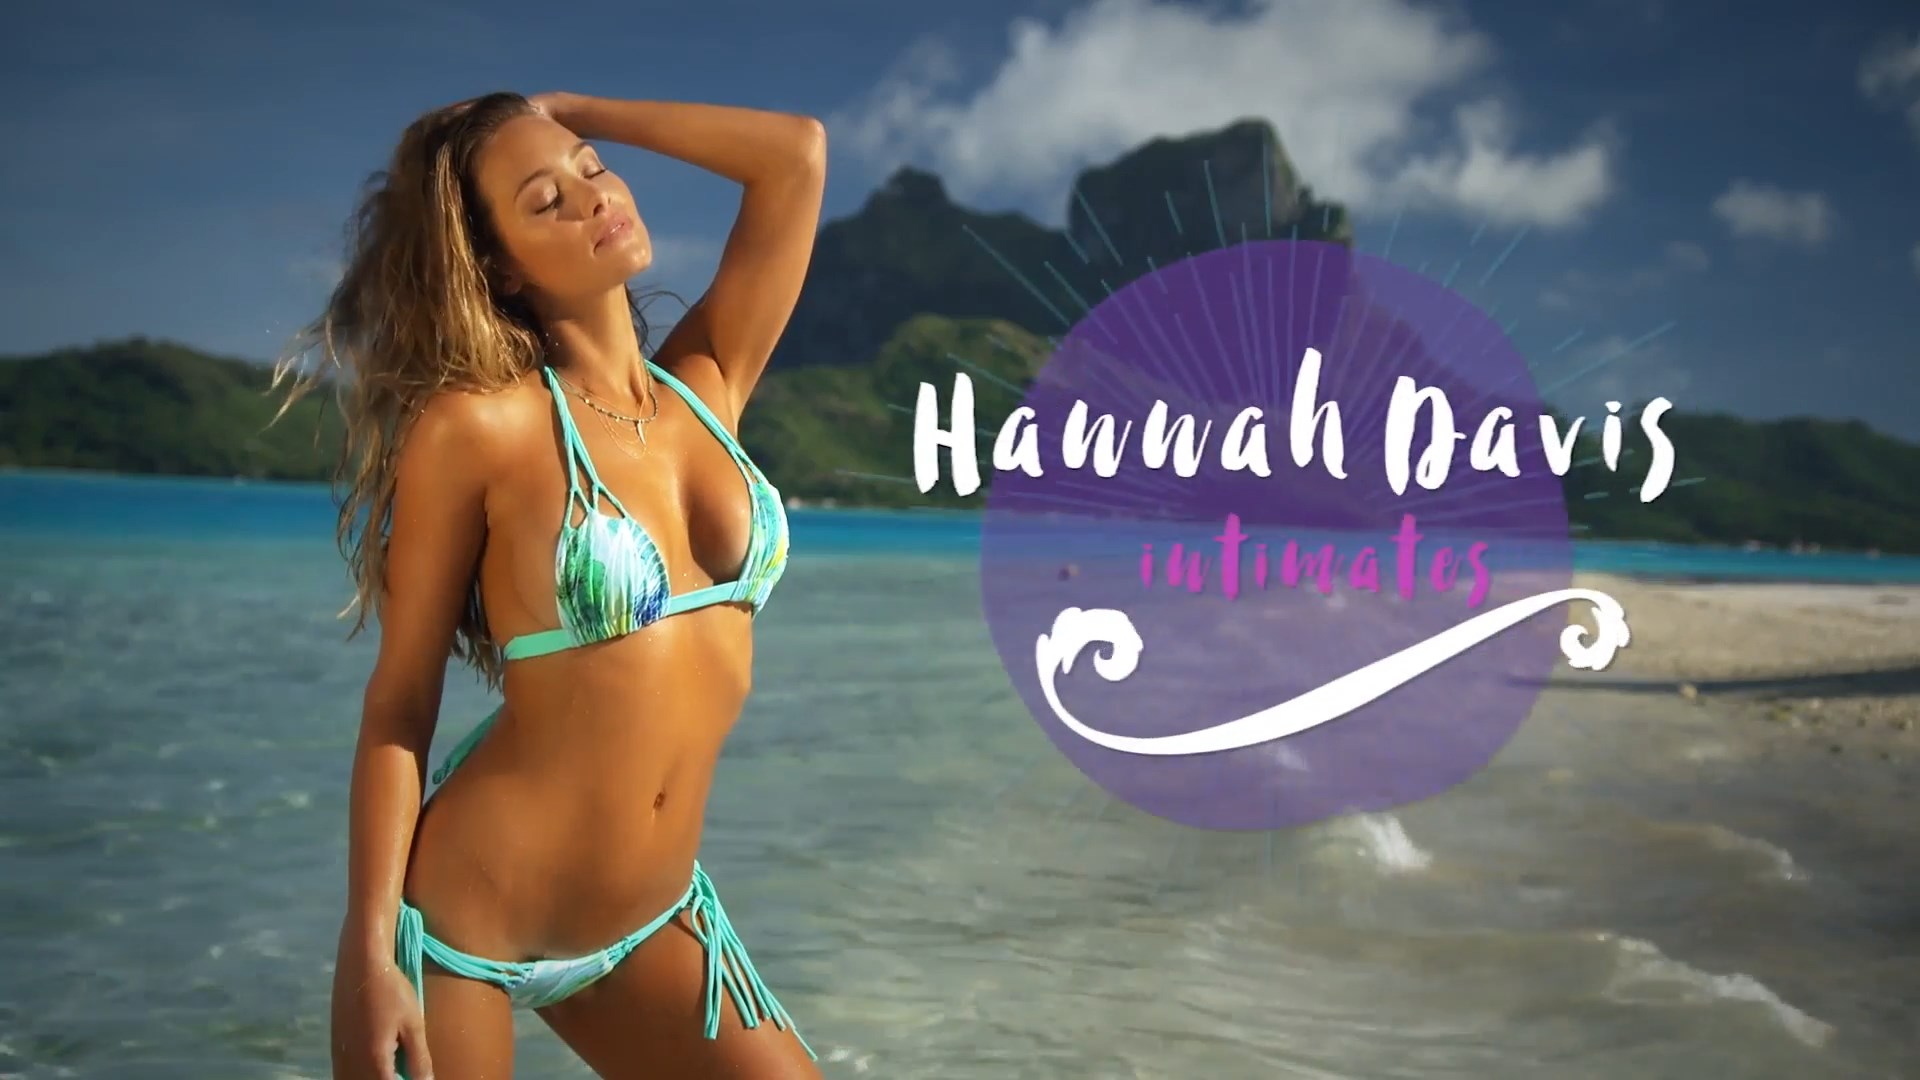 Hannah Davis Intimates Photo